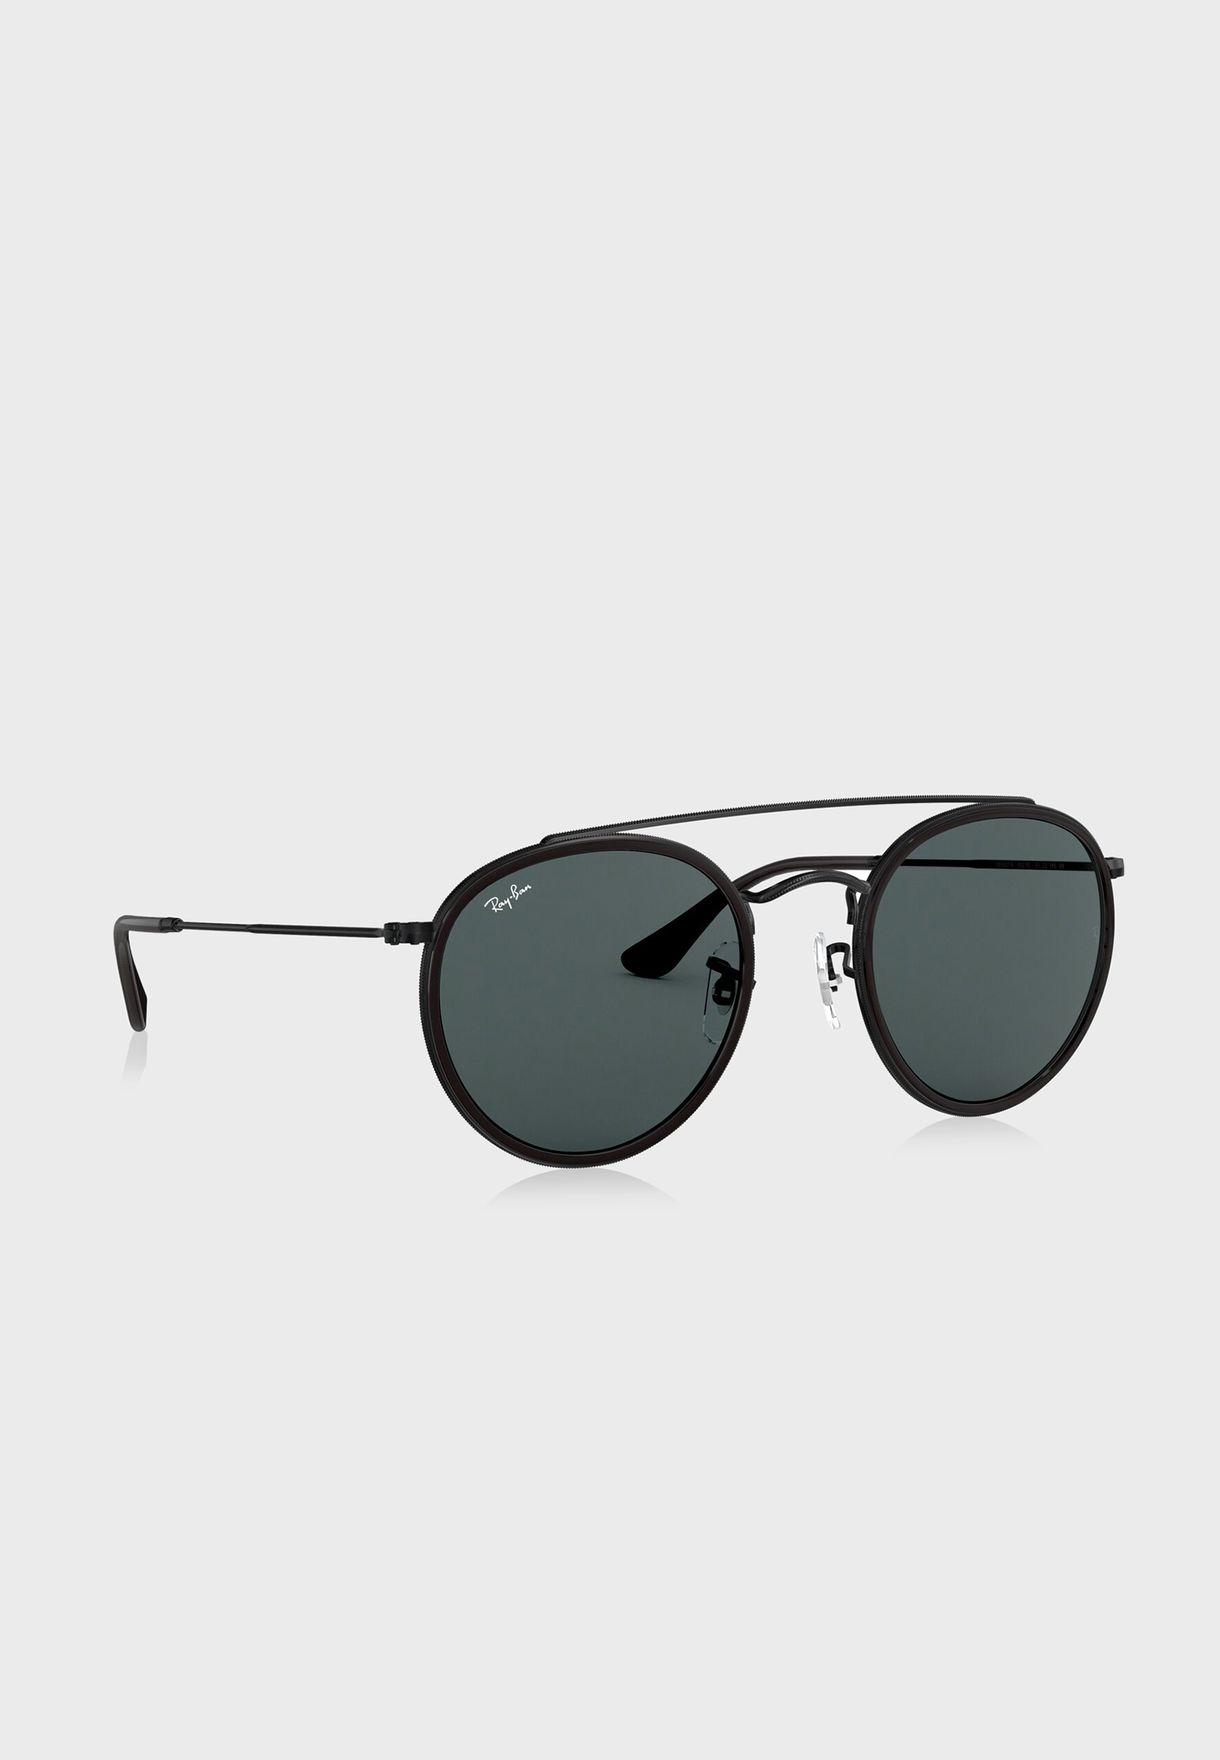 0RB3647N Double Bridge Sunglasses